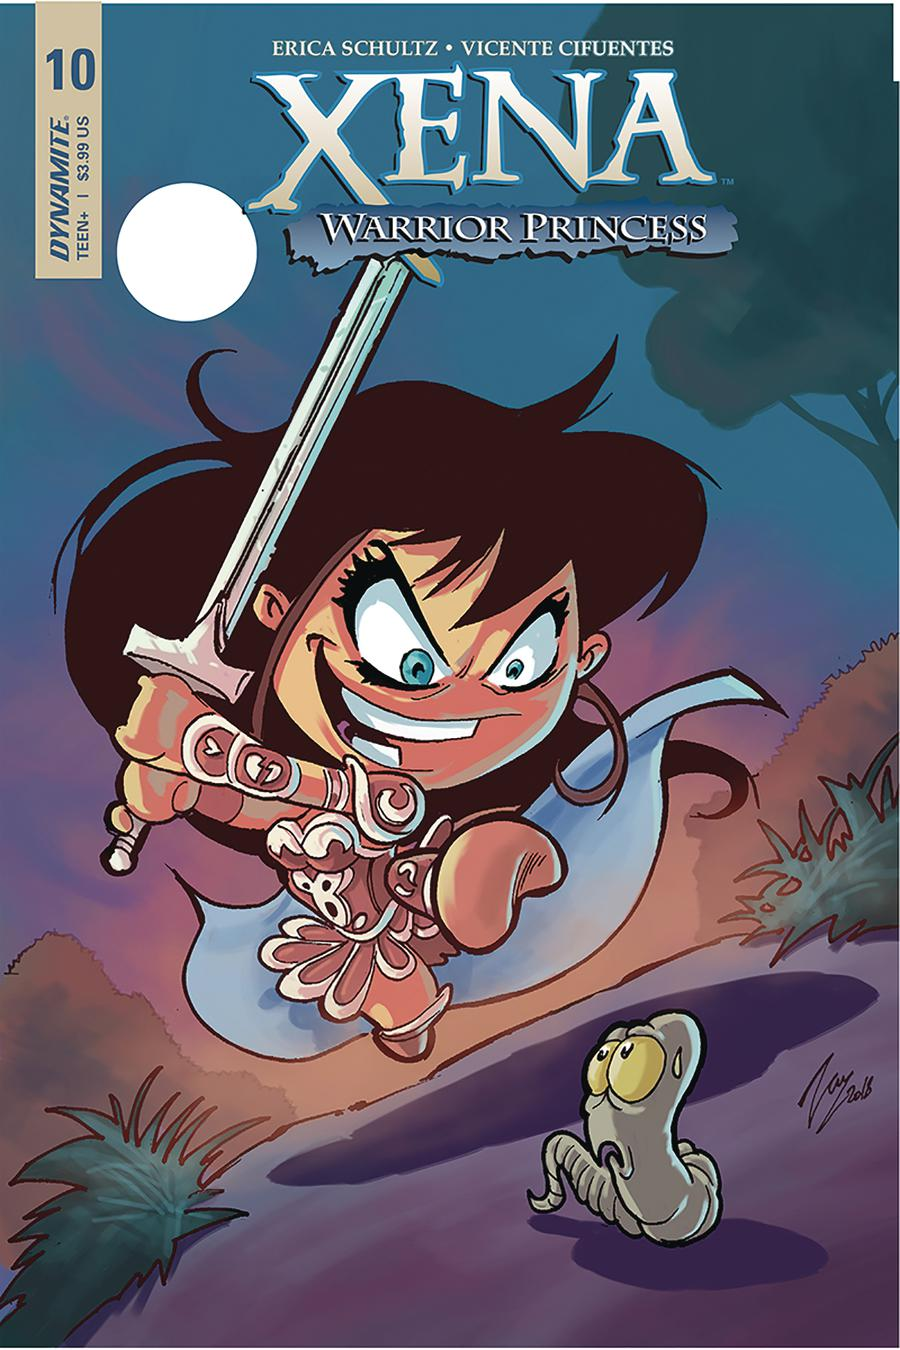 Xena Vol 2 #10 Cover B Variant Vicente Cifuentes Cover